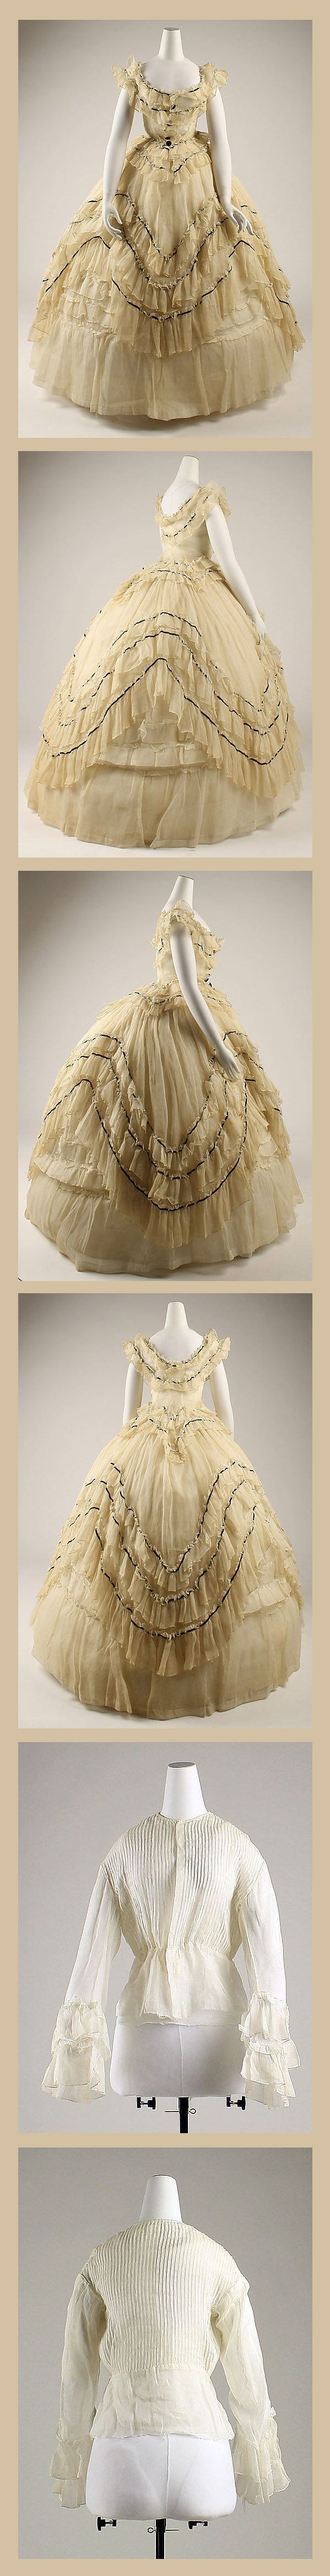 Dress ca. 1860 This is a white dress, which is not acceptable for Presentation, but the design and pattern is correct.